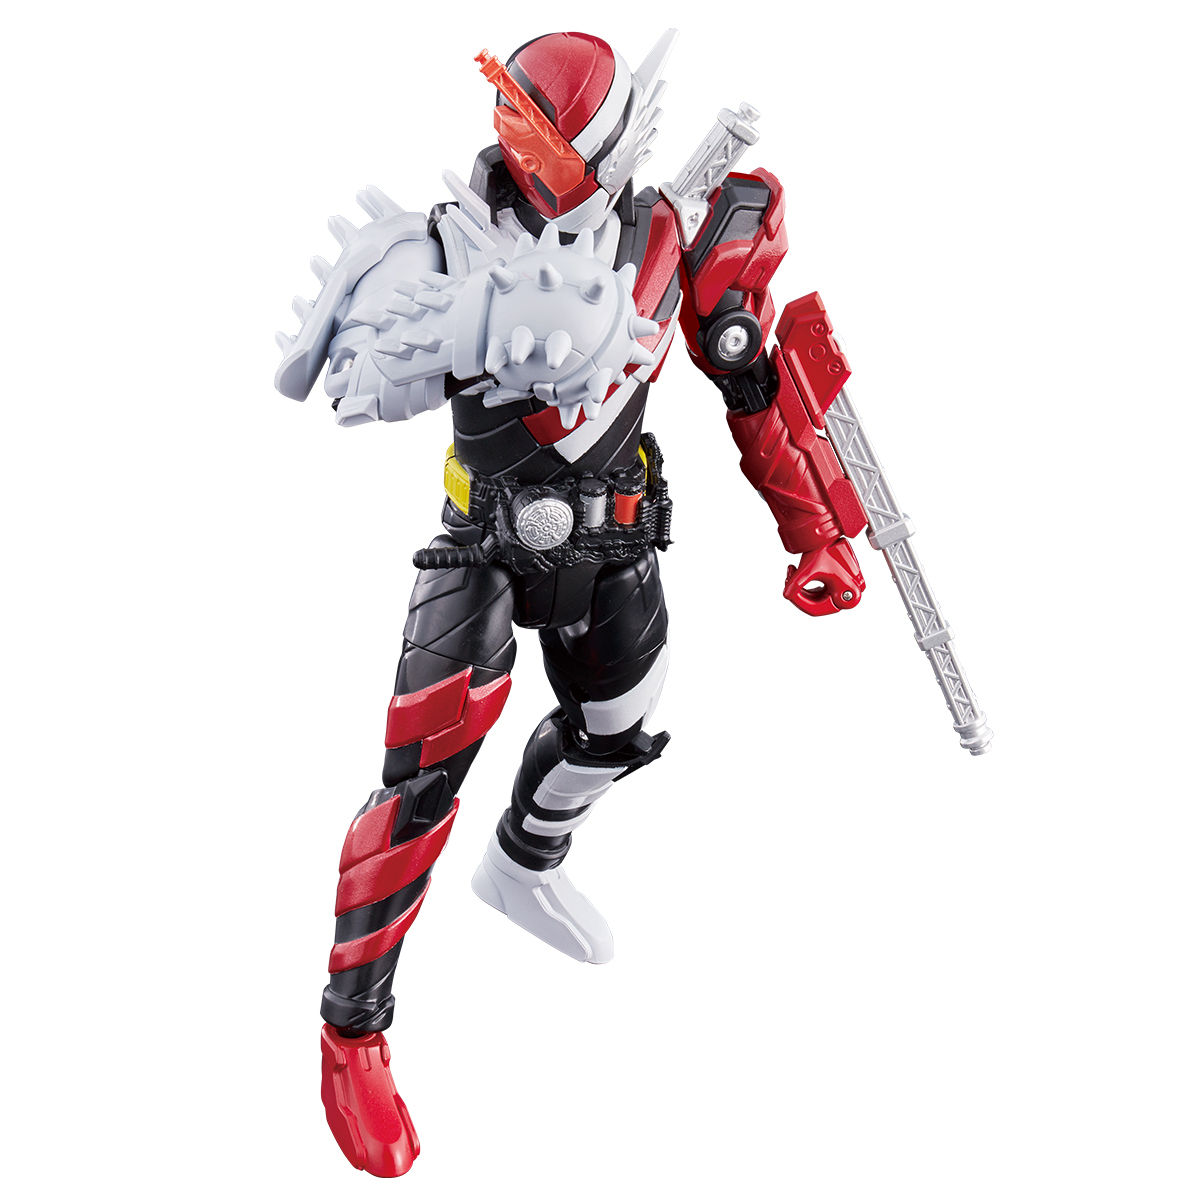 New Official Images Bottle Change Rider Figures from Kamen ...